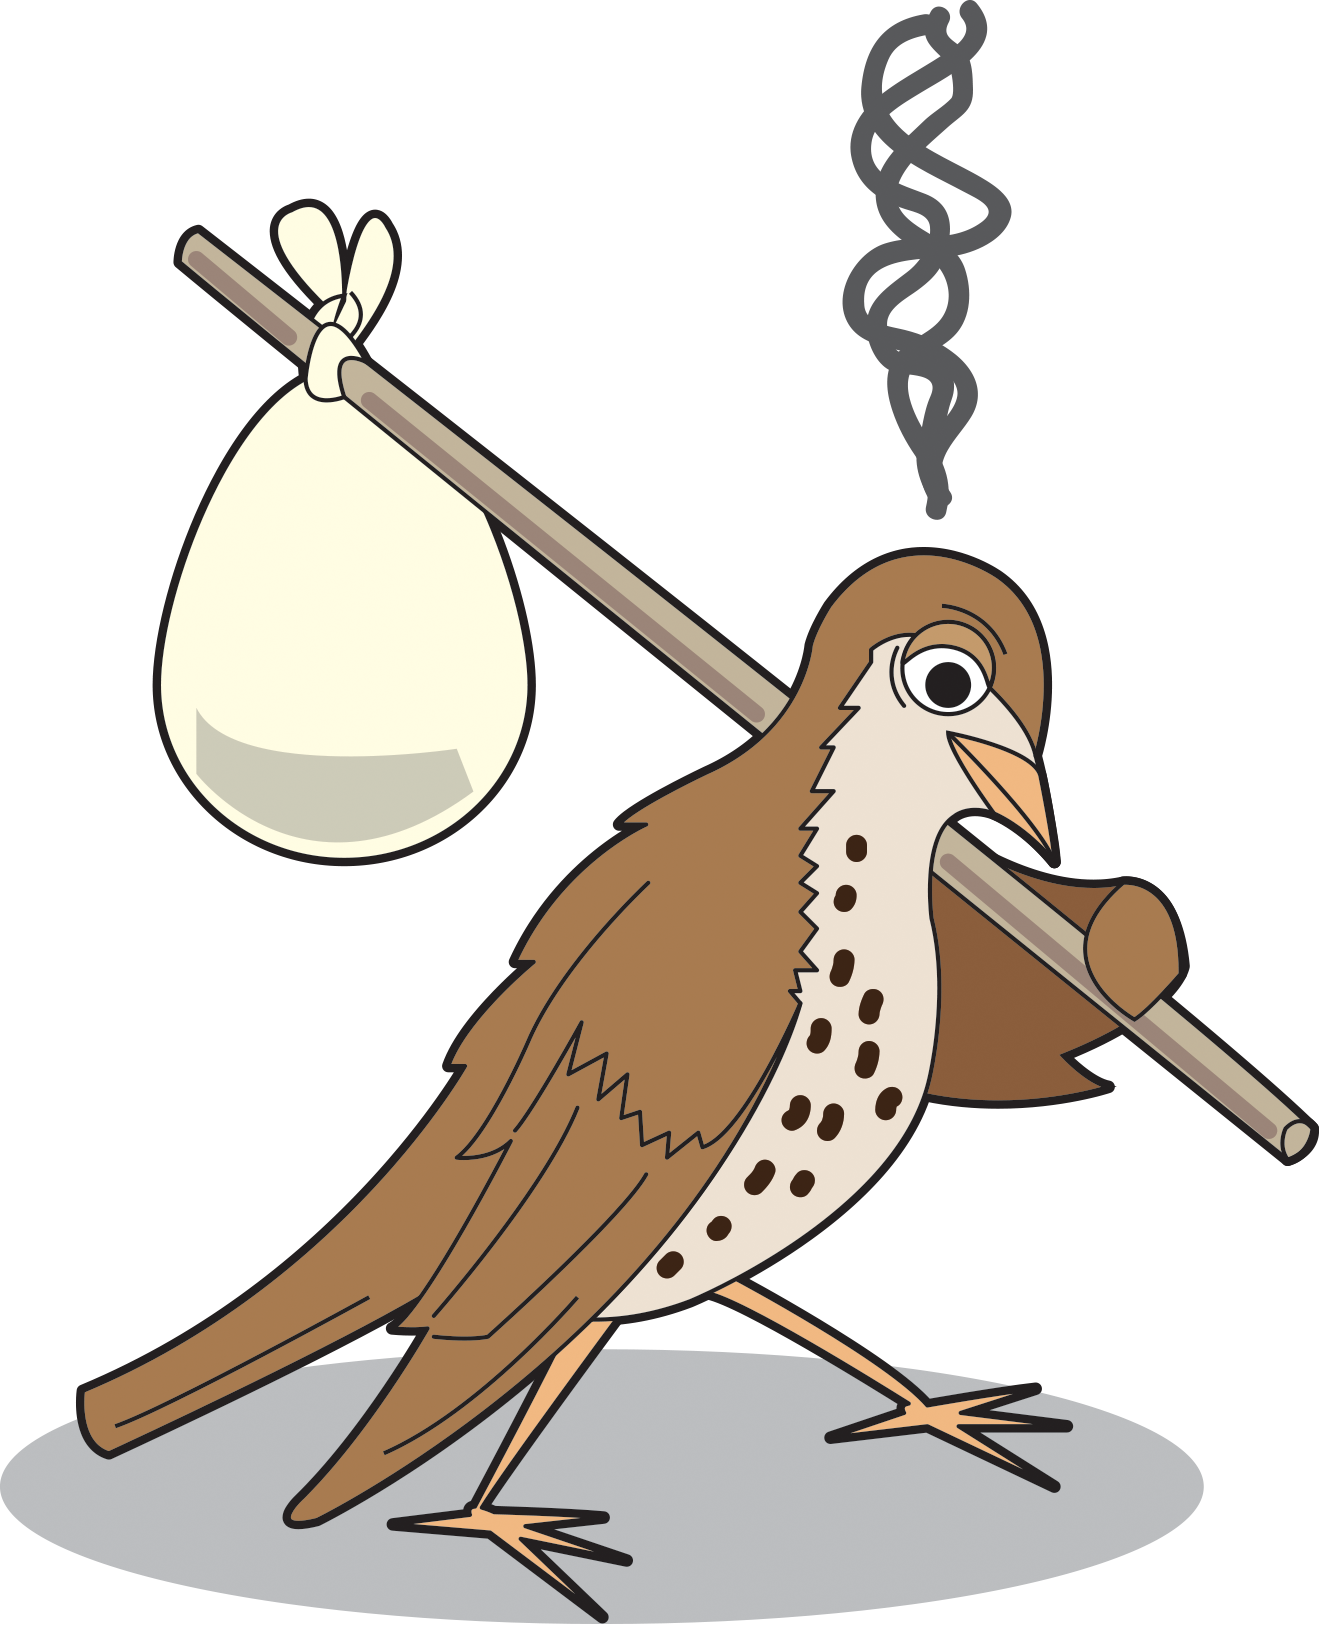 a cartoon of an upset bird with a stick and bindle